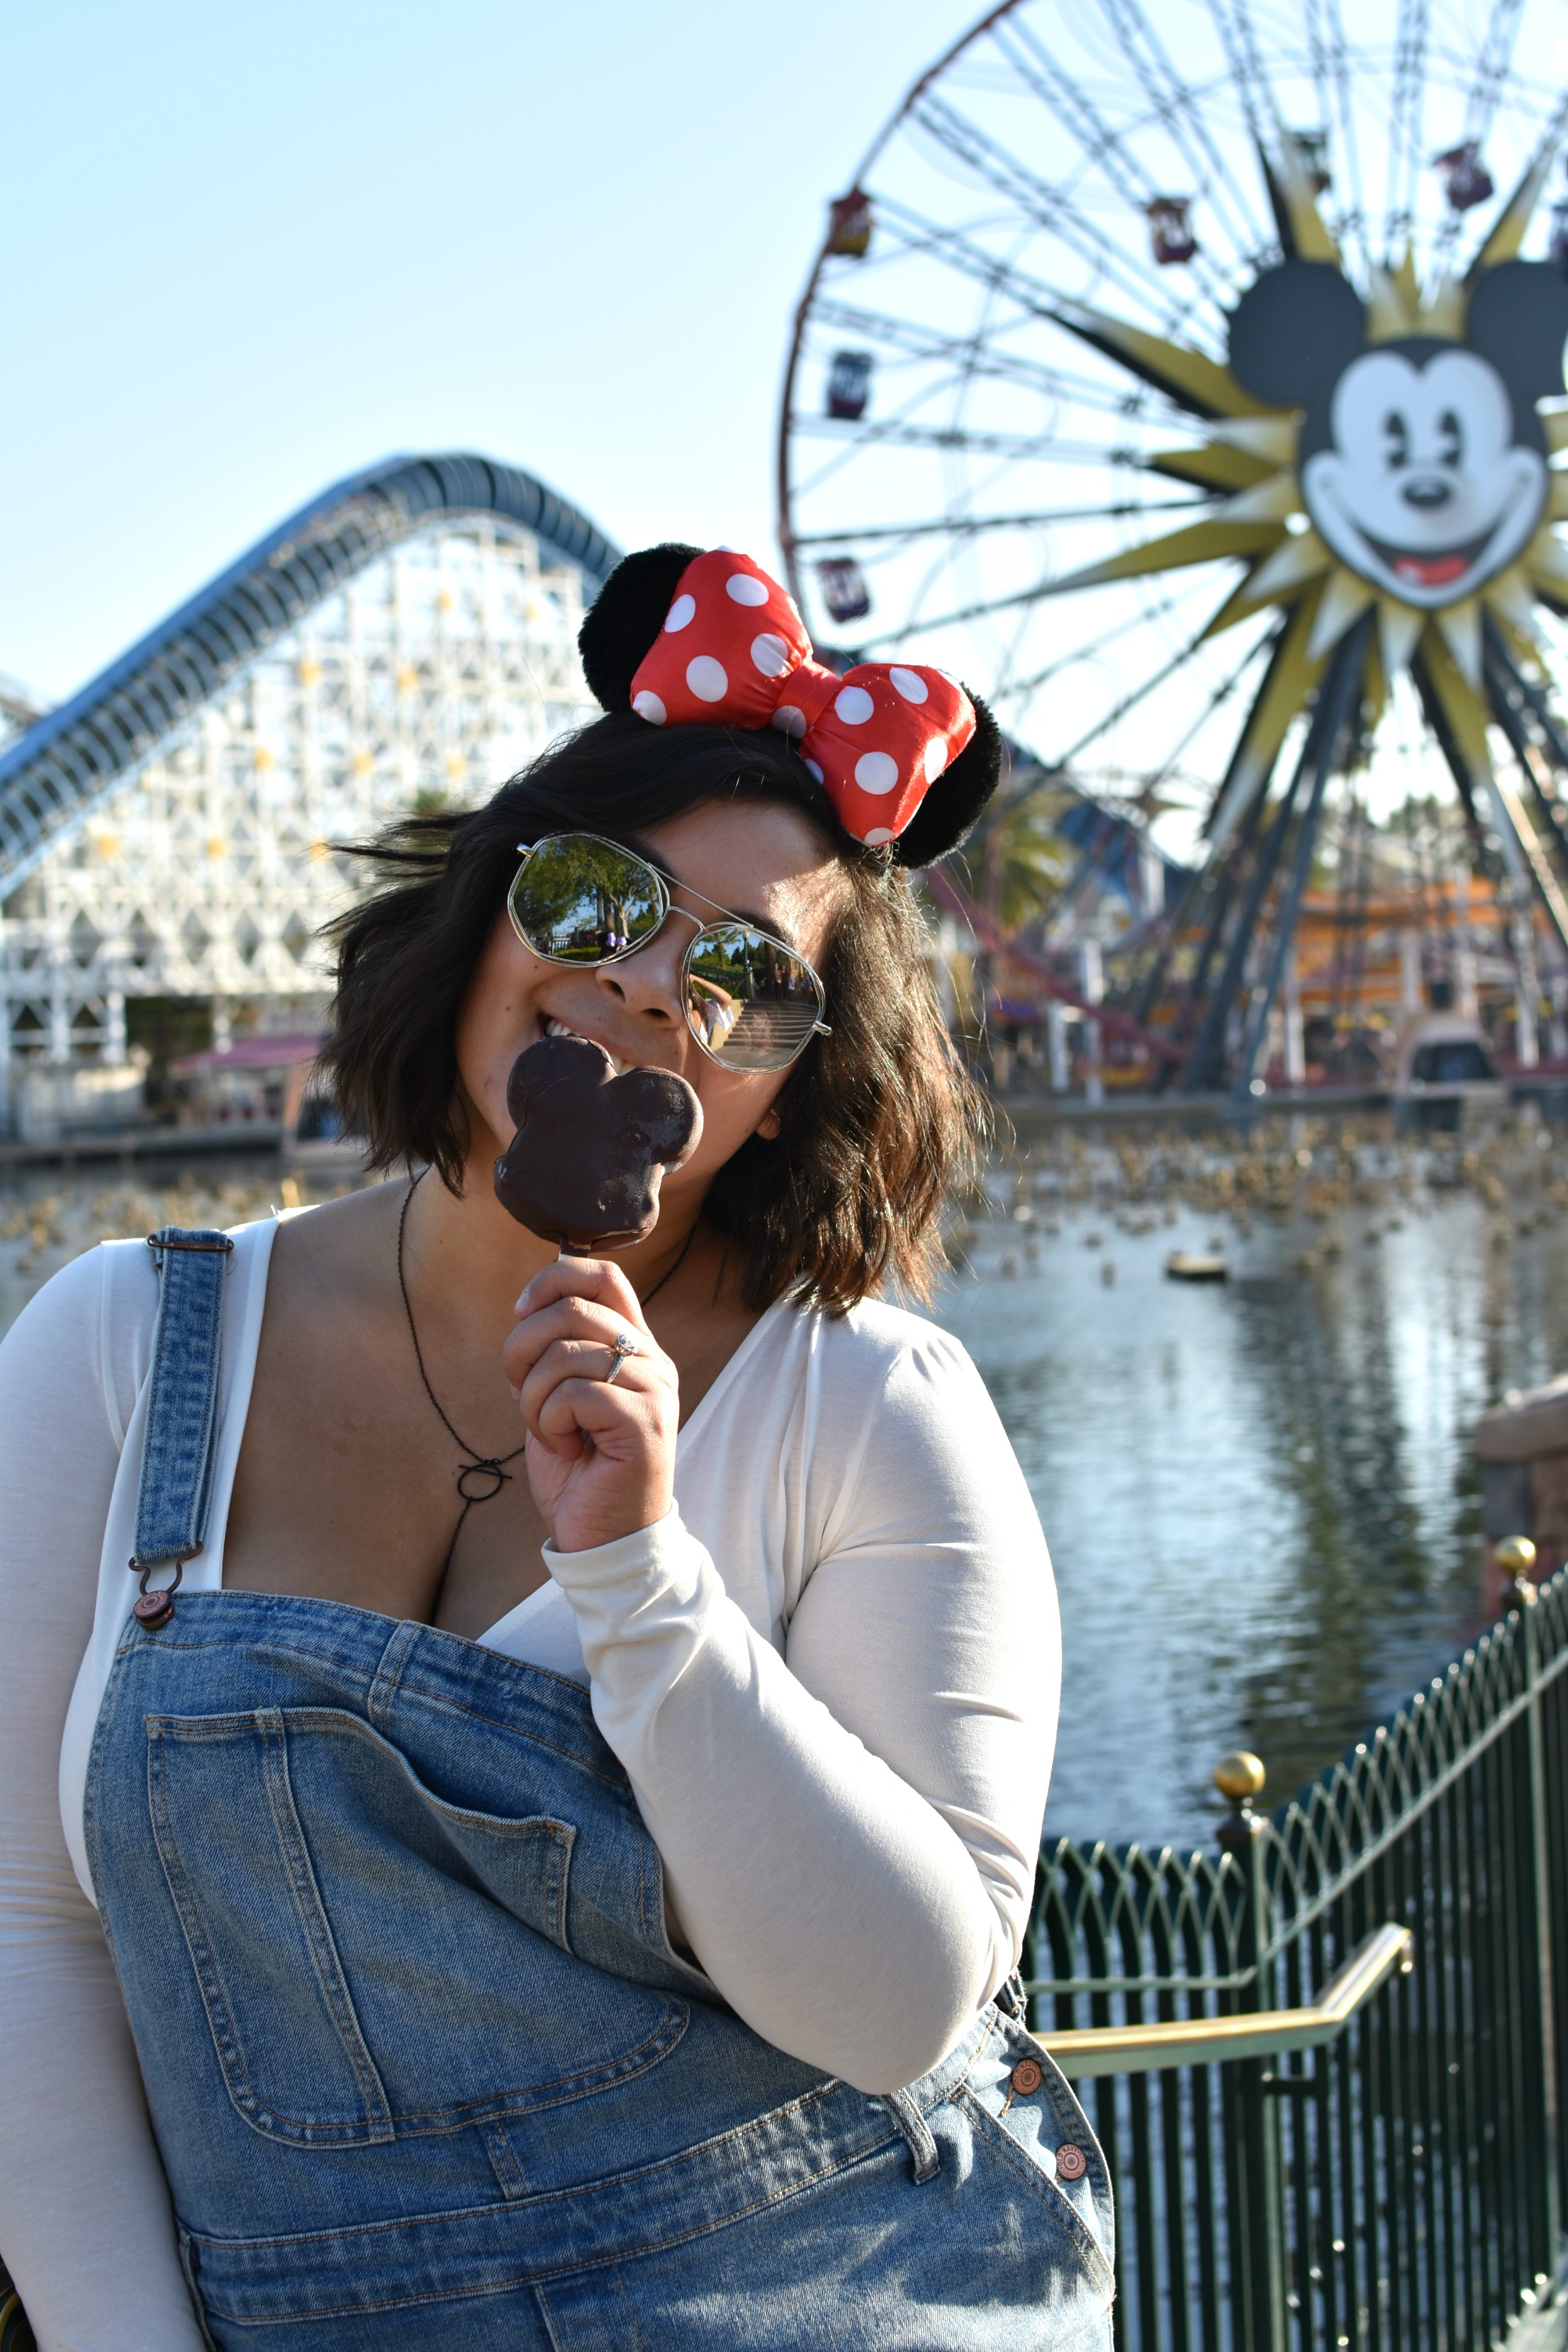 e97eaf07ee1 Plus Size Guide to a Picking What to Wear to Disneyland - biancakarina